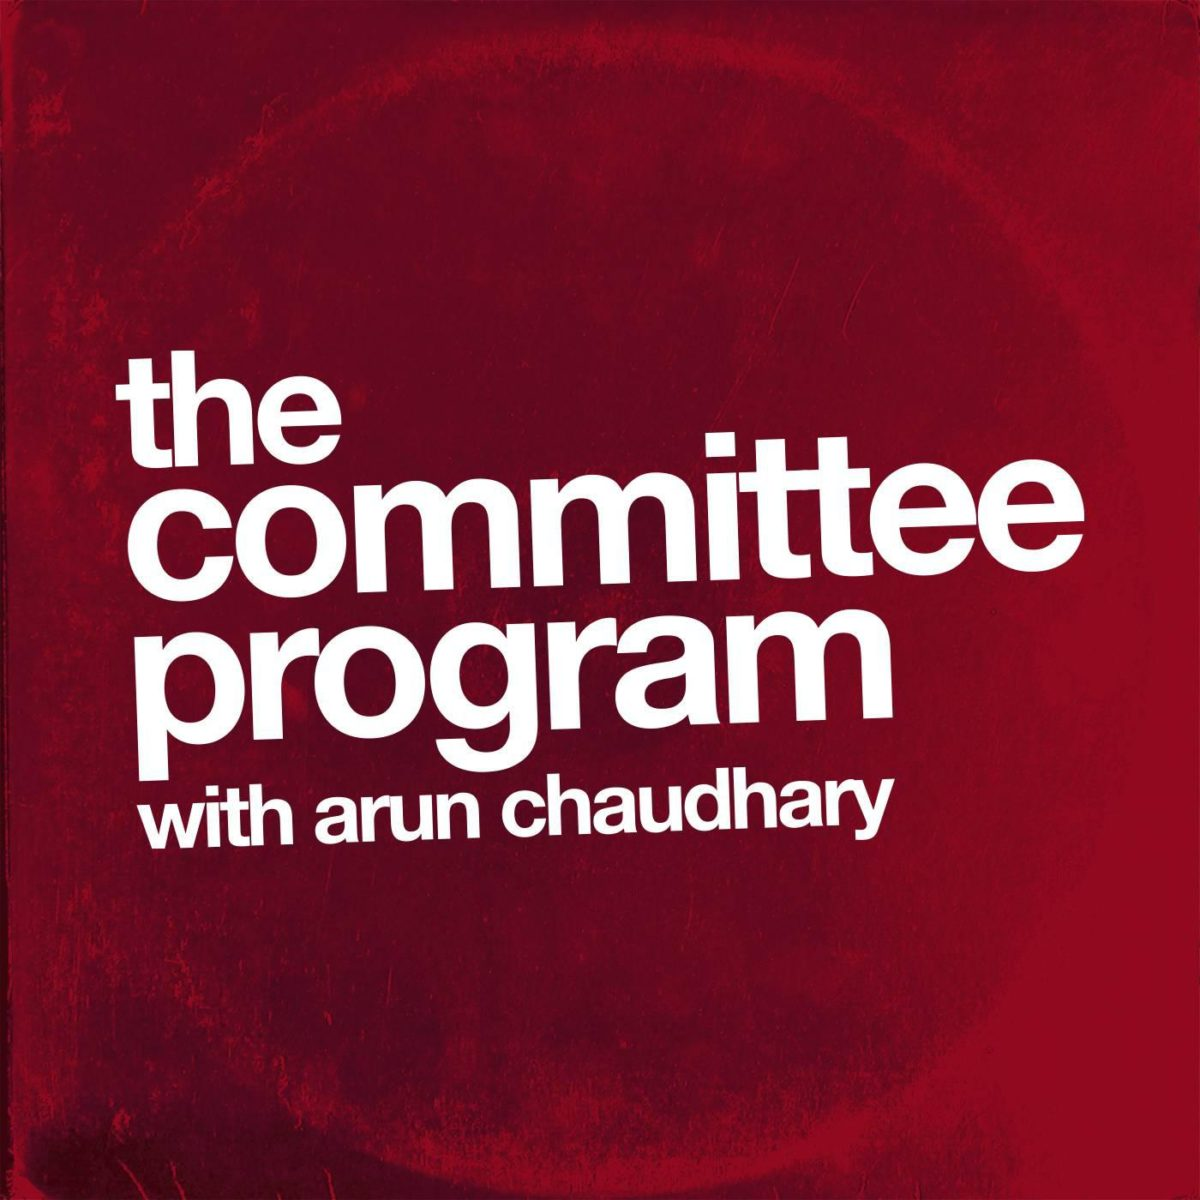 Committee Programme logo. The image depicts the logo of the Committee Programme. This consists of a swirling dark red background with white text slopping at a 15 or 20 degree angle left - right. This text is all in lower case and an emboldened font rendered in white. It says The Committee Programme with Arun Chaudhary